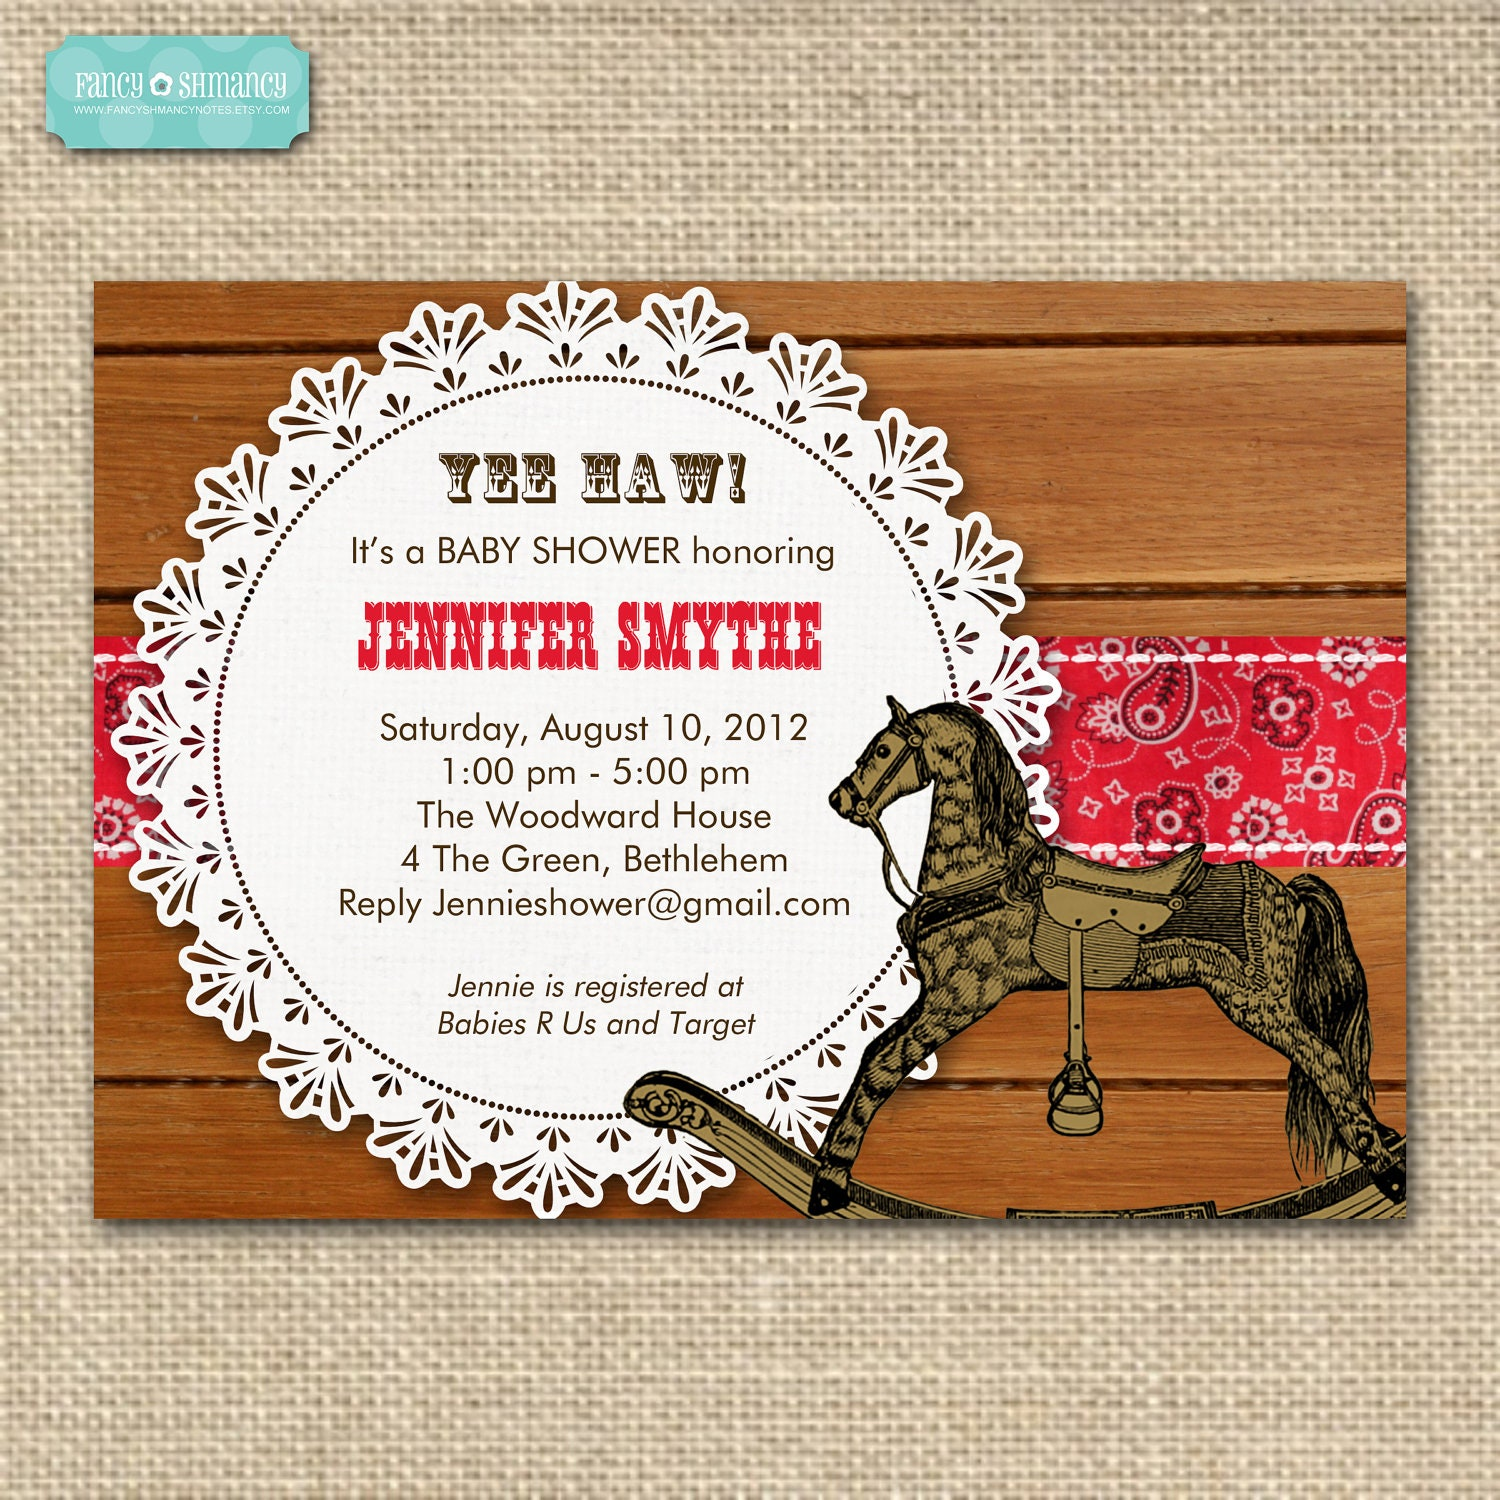 western themed baby shower invitation by fancyshmancynotes